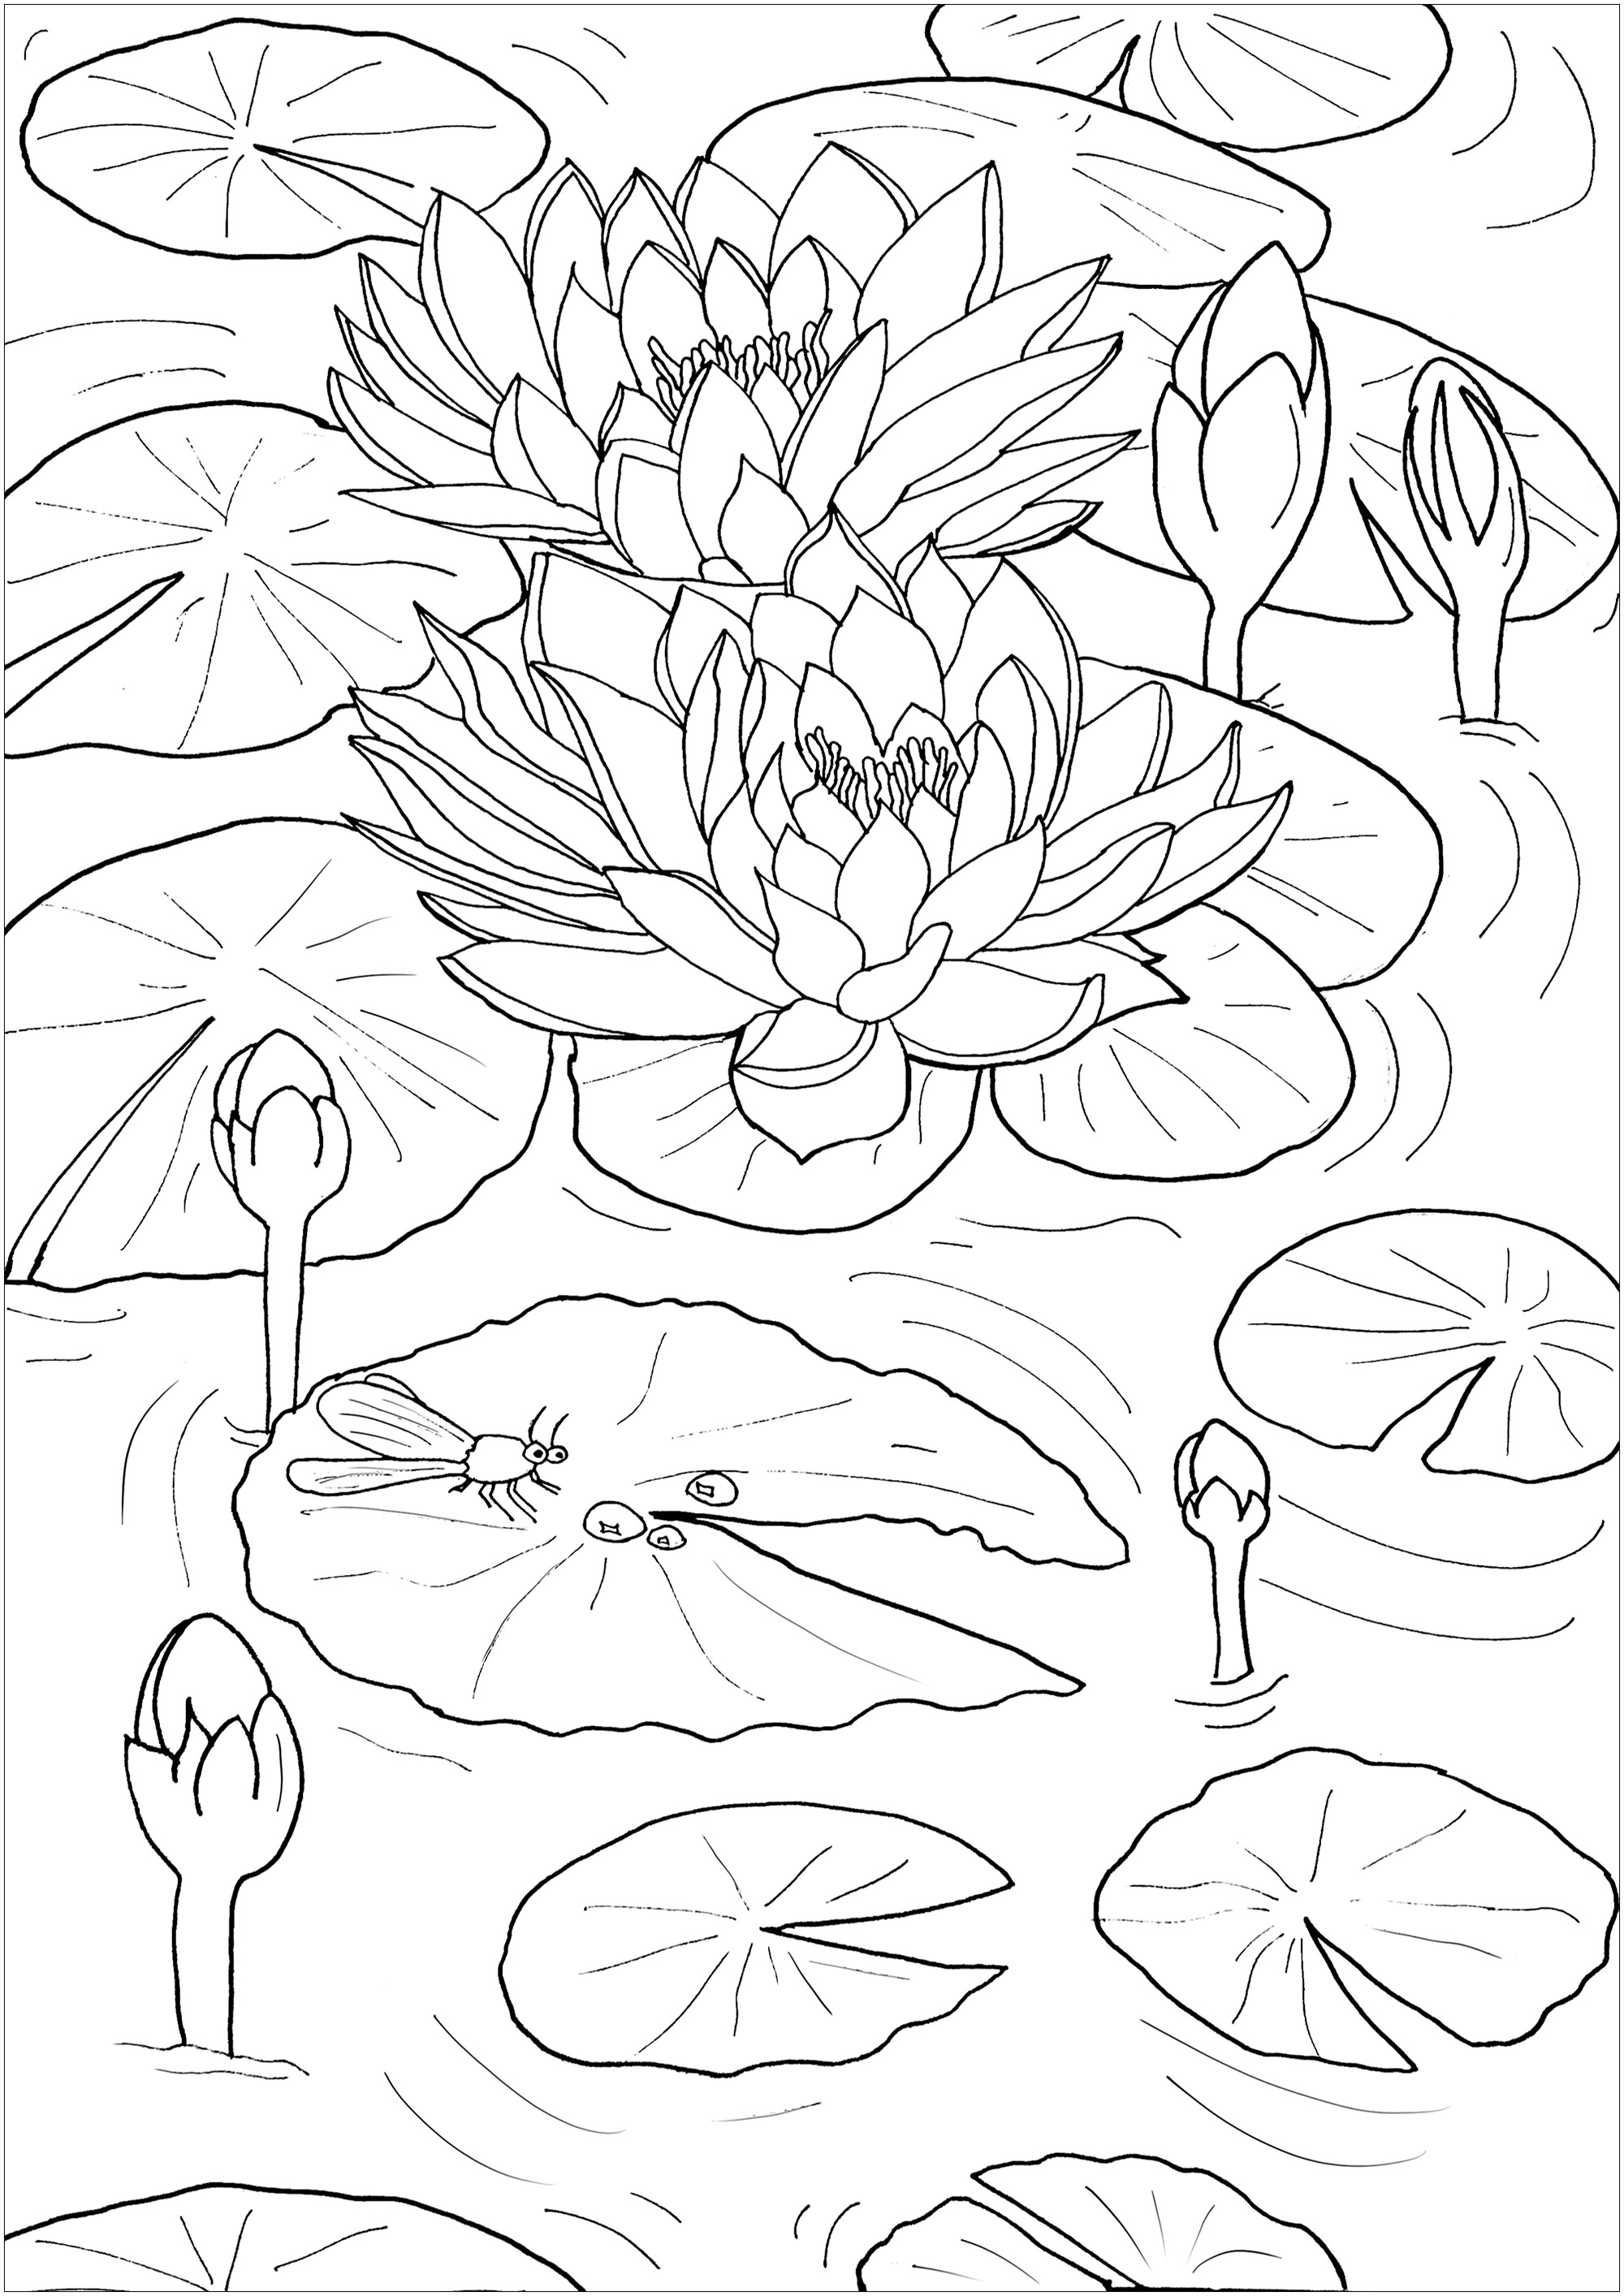 Coloring page of Water lilies and a little dragonfly